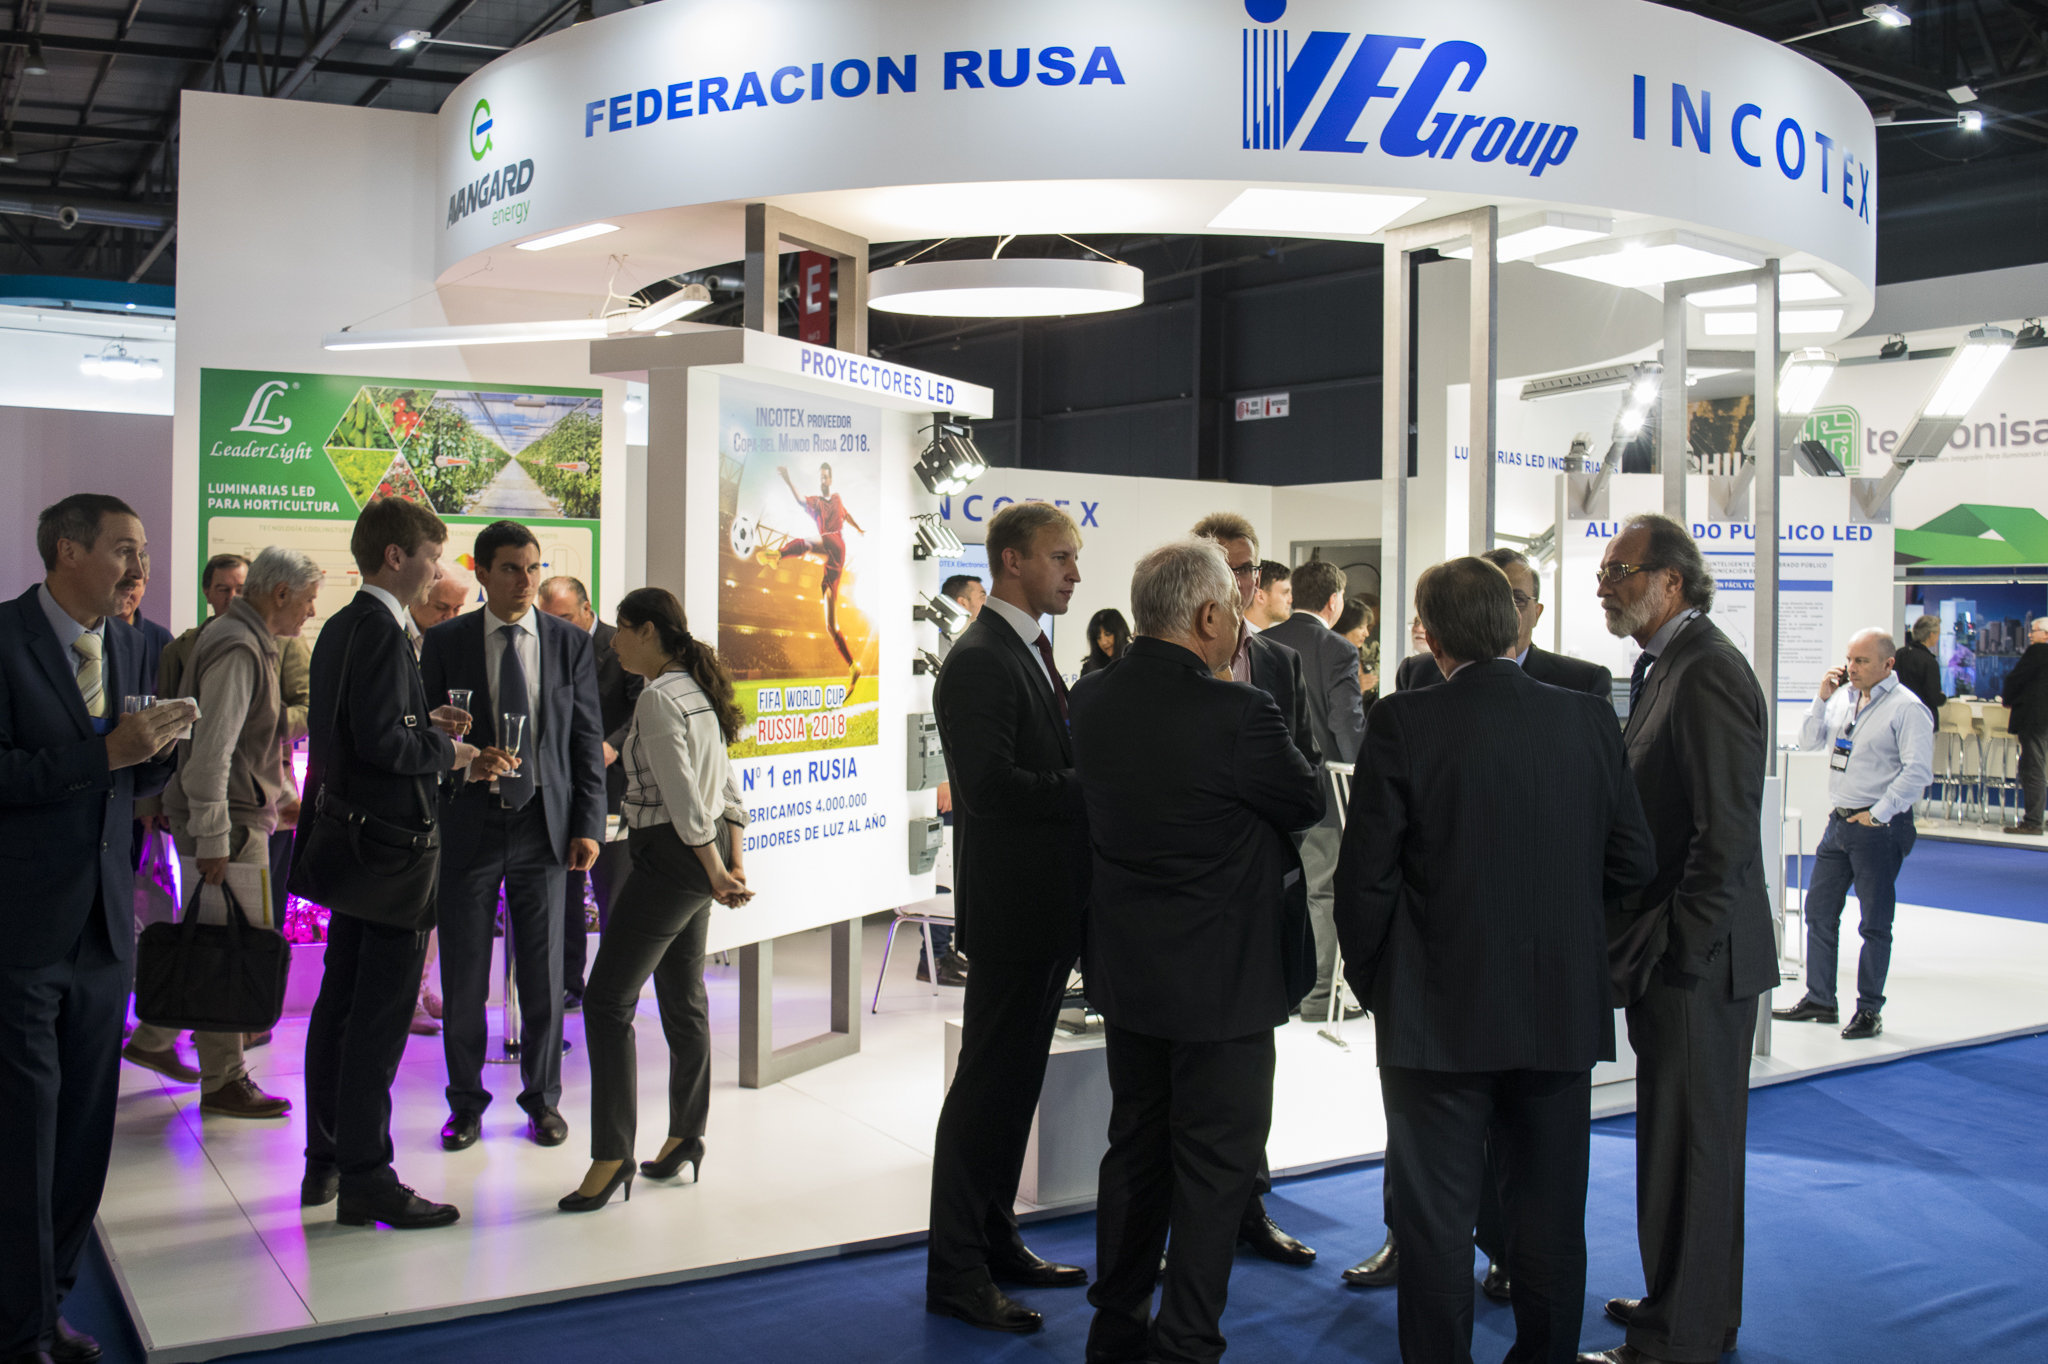 Incotex Electronics Group, Russian group of companies, leader in LED lighting, showcased its products at BIEL Light + Building Buenos Aires